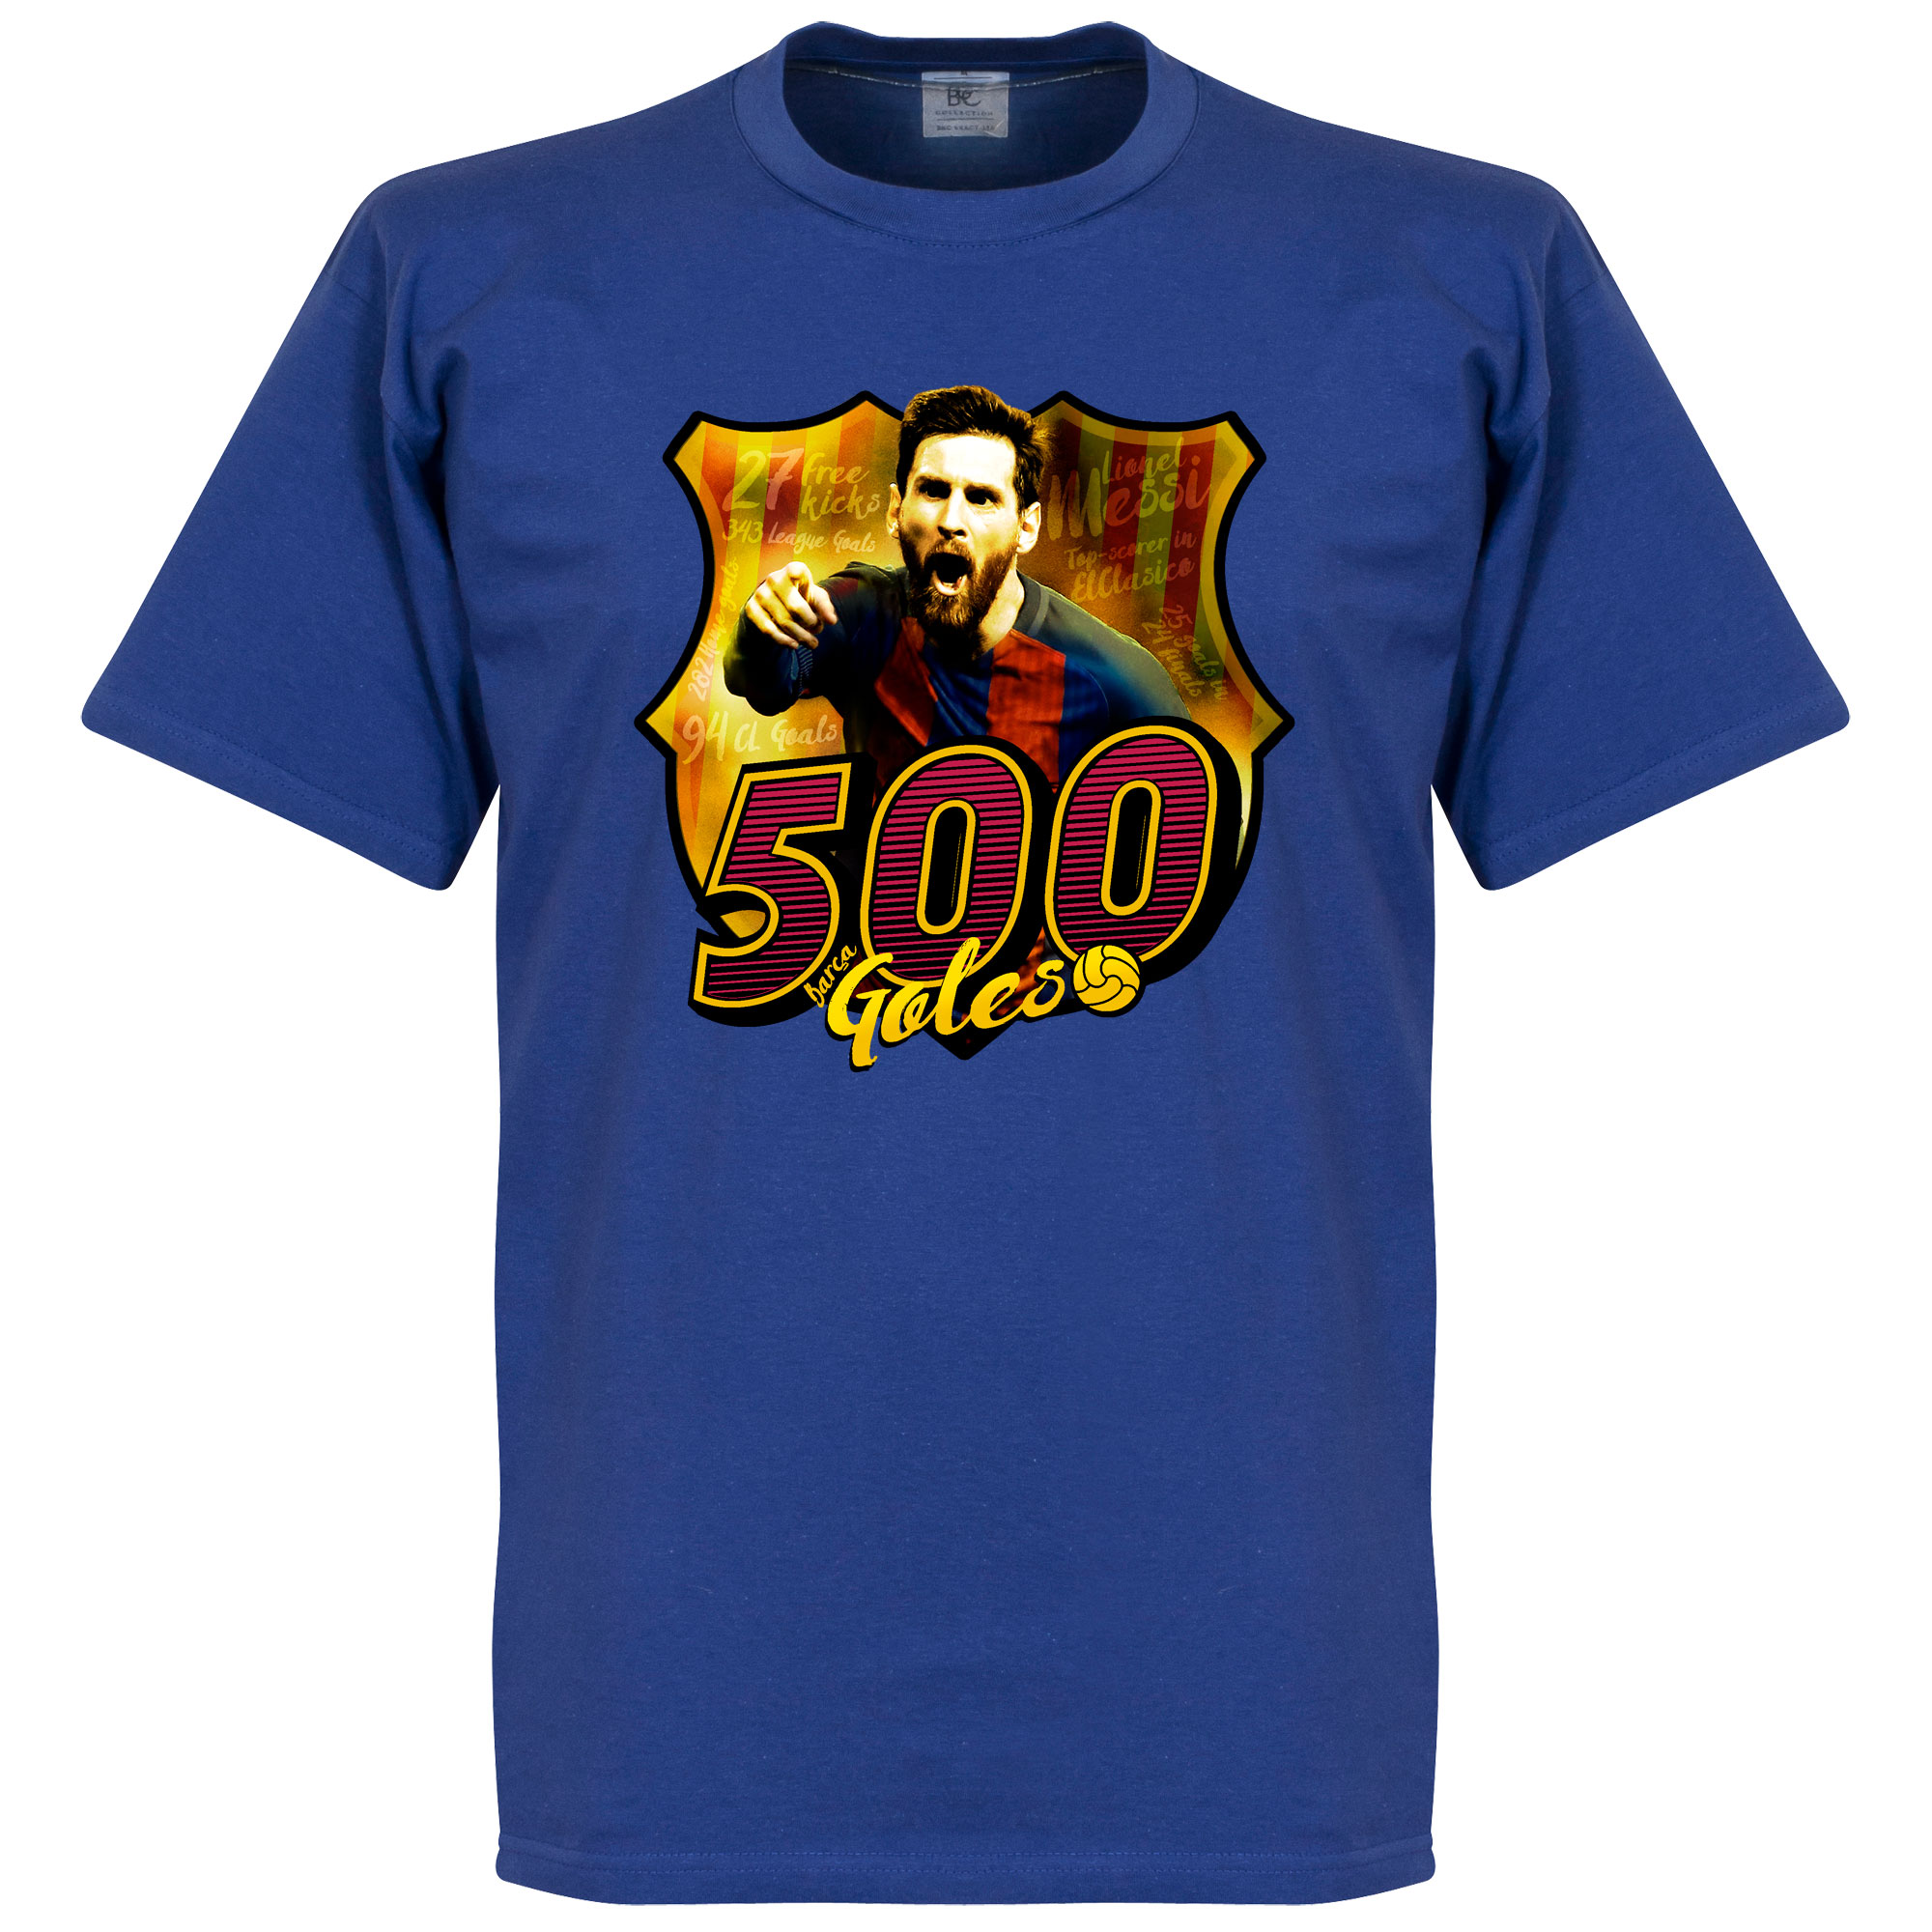 Messi 500 Club Goals Tee - Blue - L